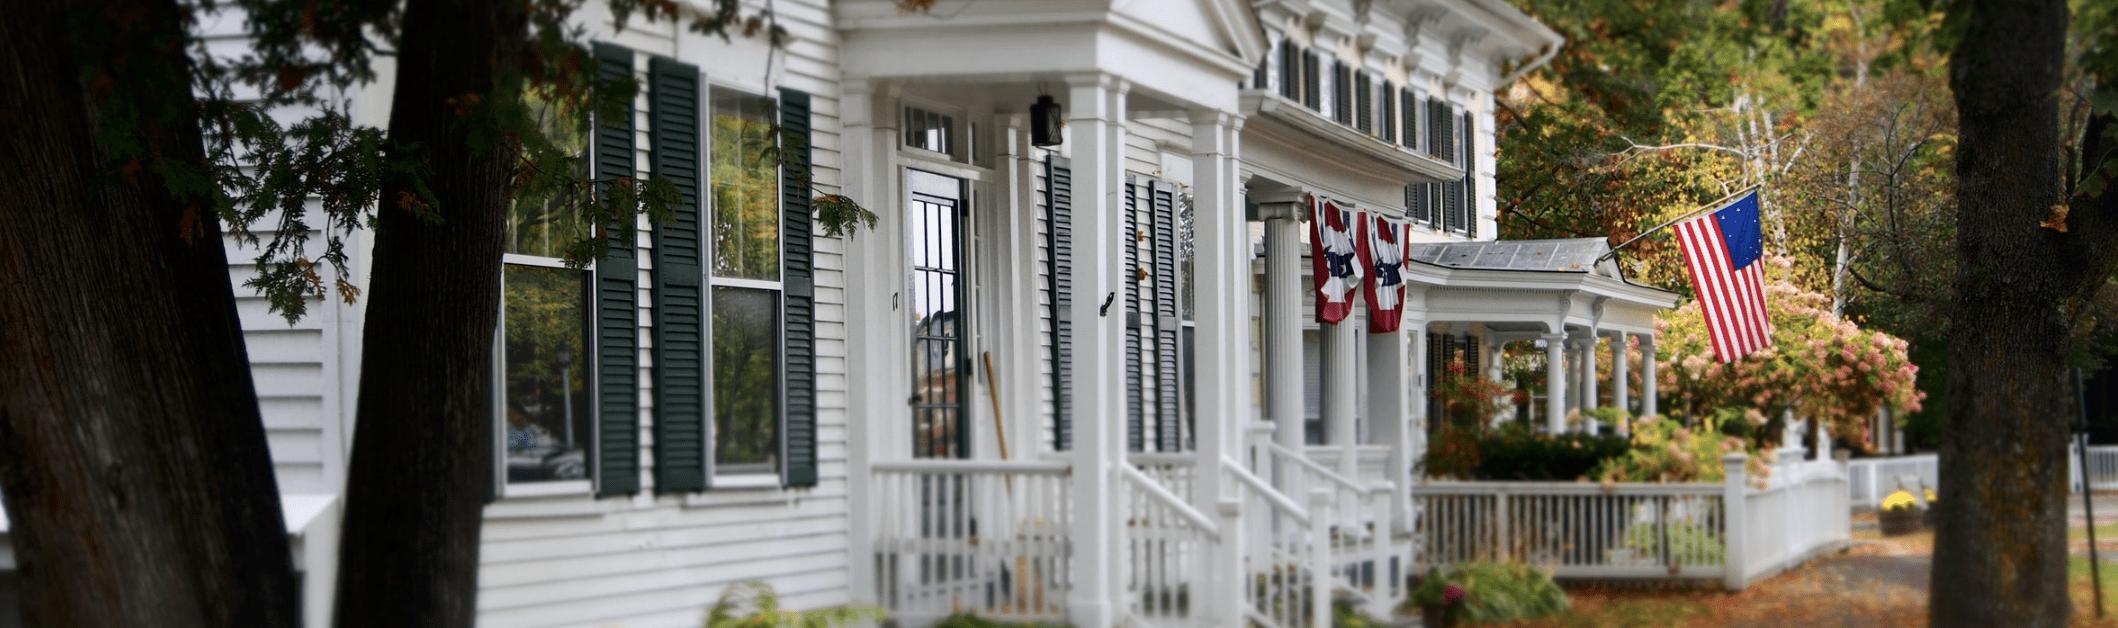 5 Tips For Downsizing The Family Home in New England